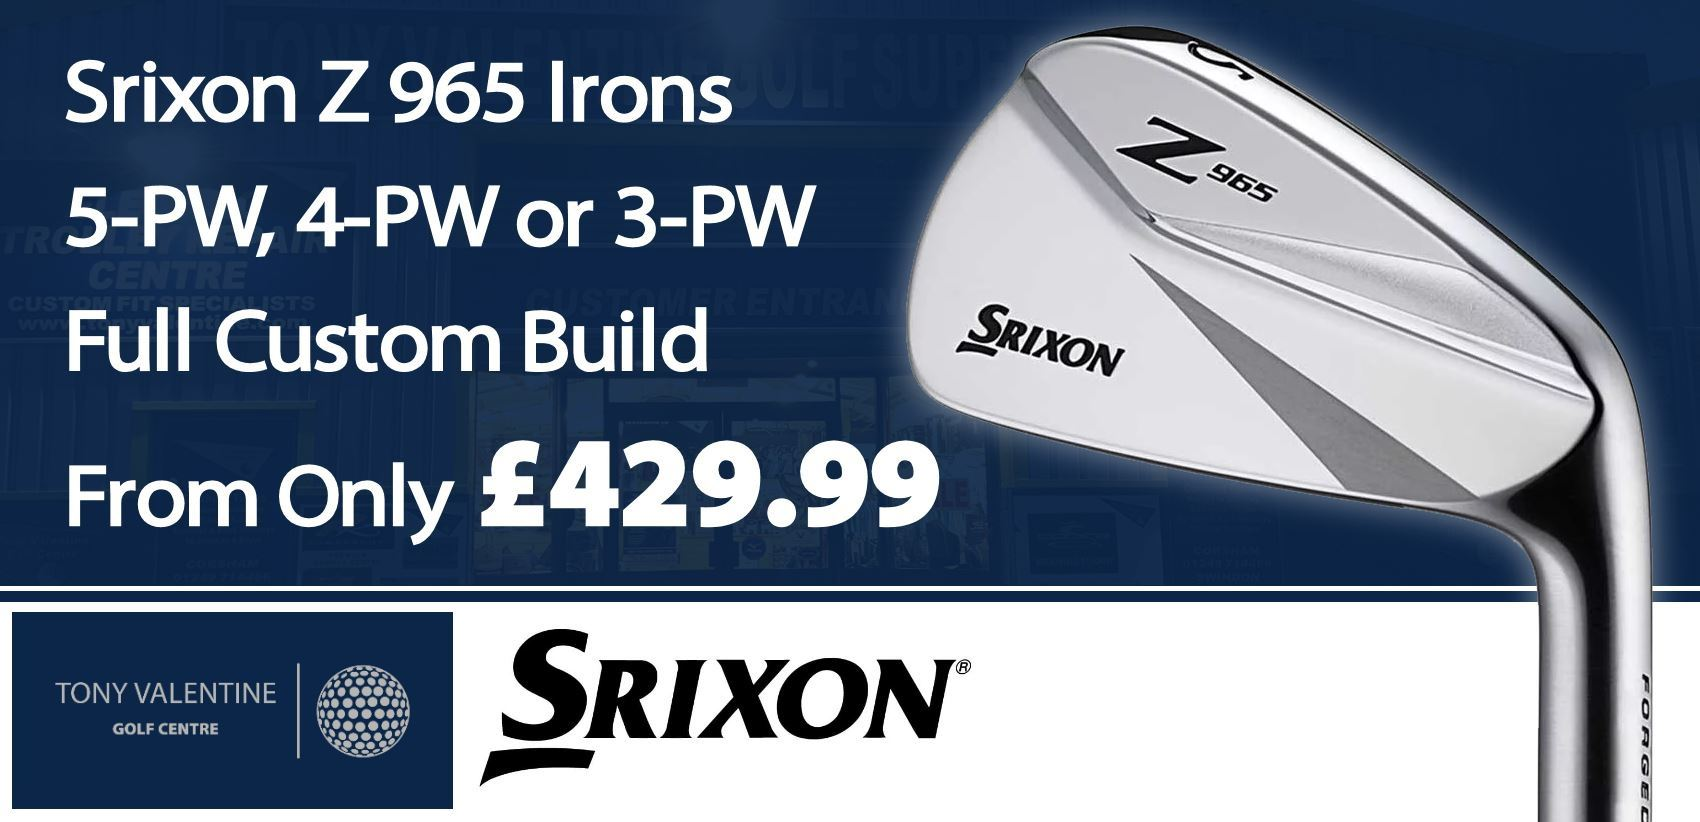 Srixon Z965 Irons - Special Offer!